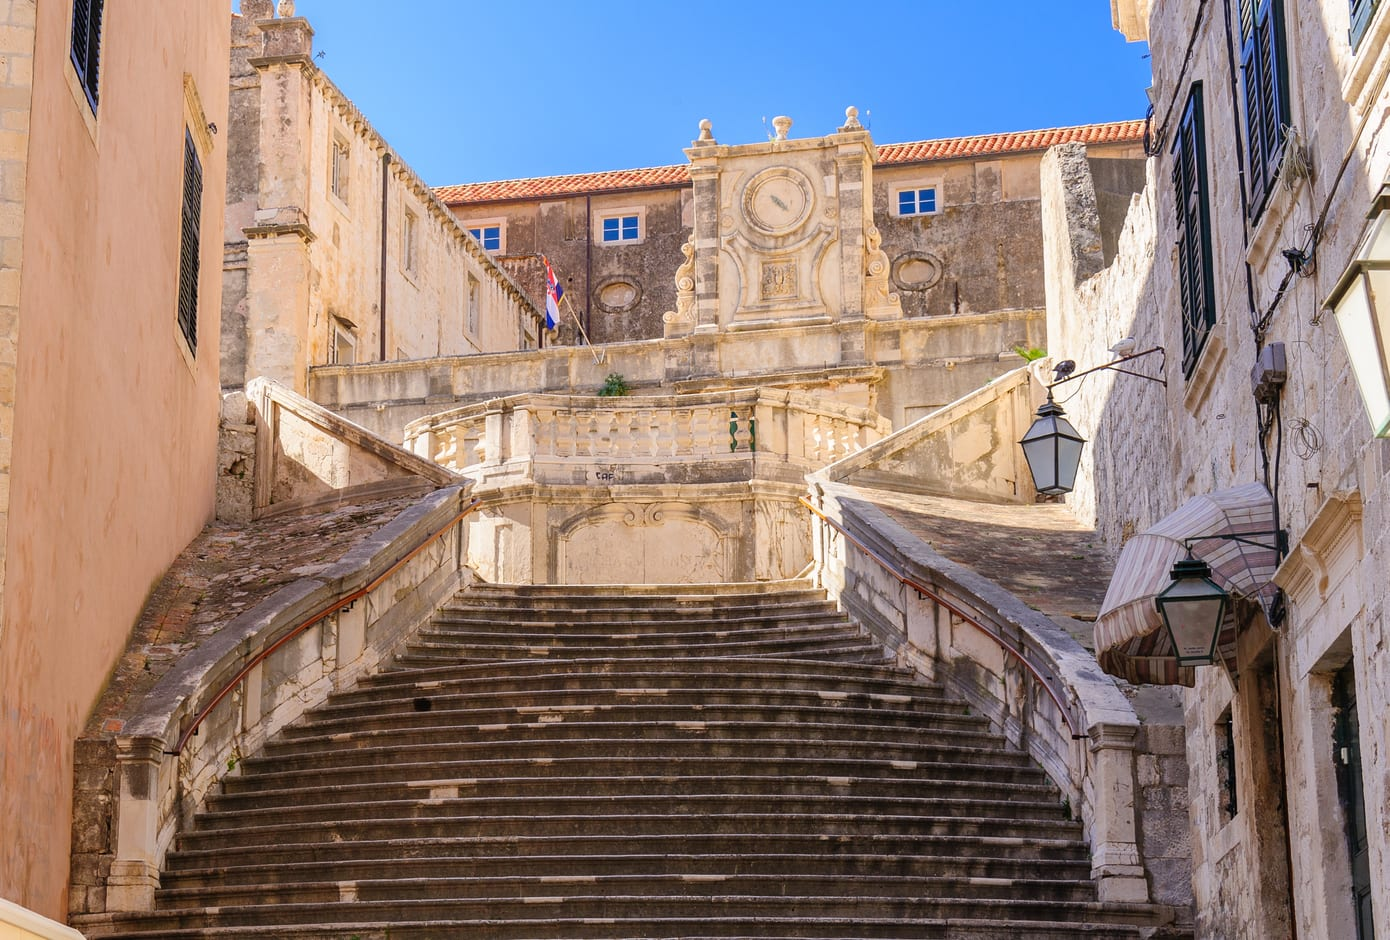 The Jesuit Staircase leading up to the Jesuit Church of St. Ignatius Loyola and the old Collegium Ragusinum in Dubrovnik